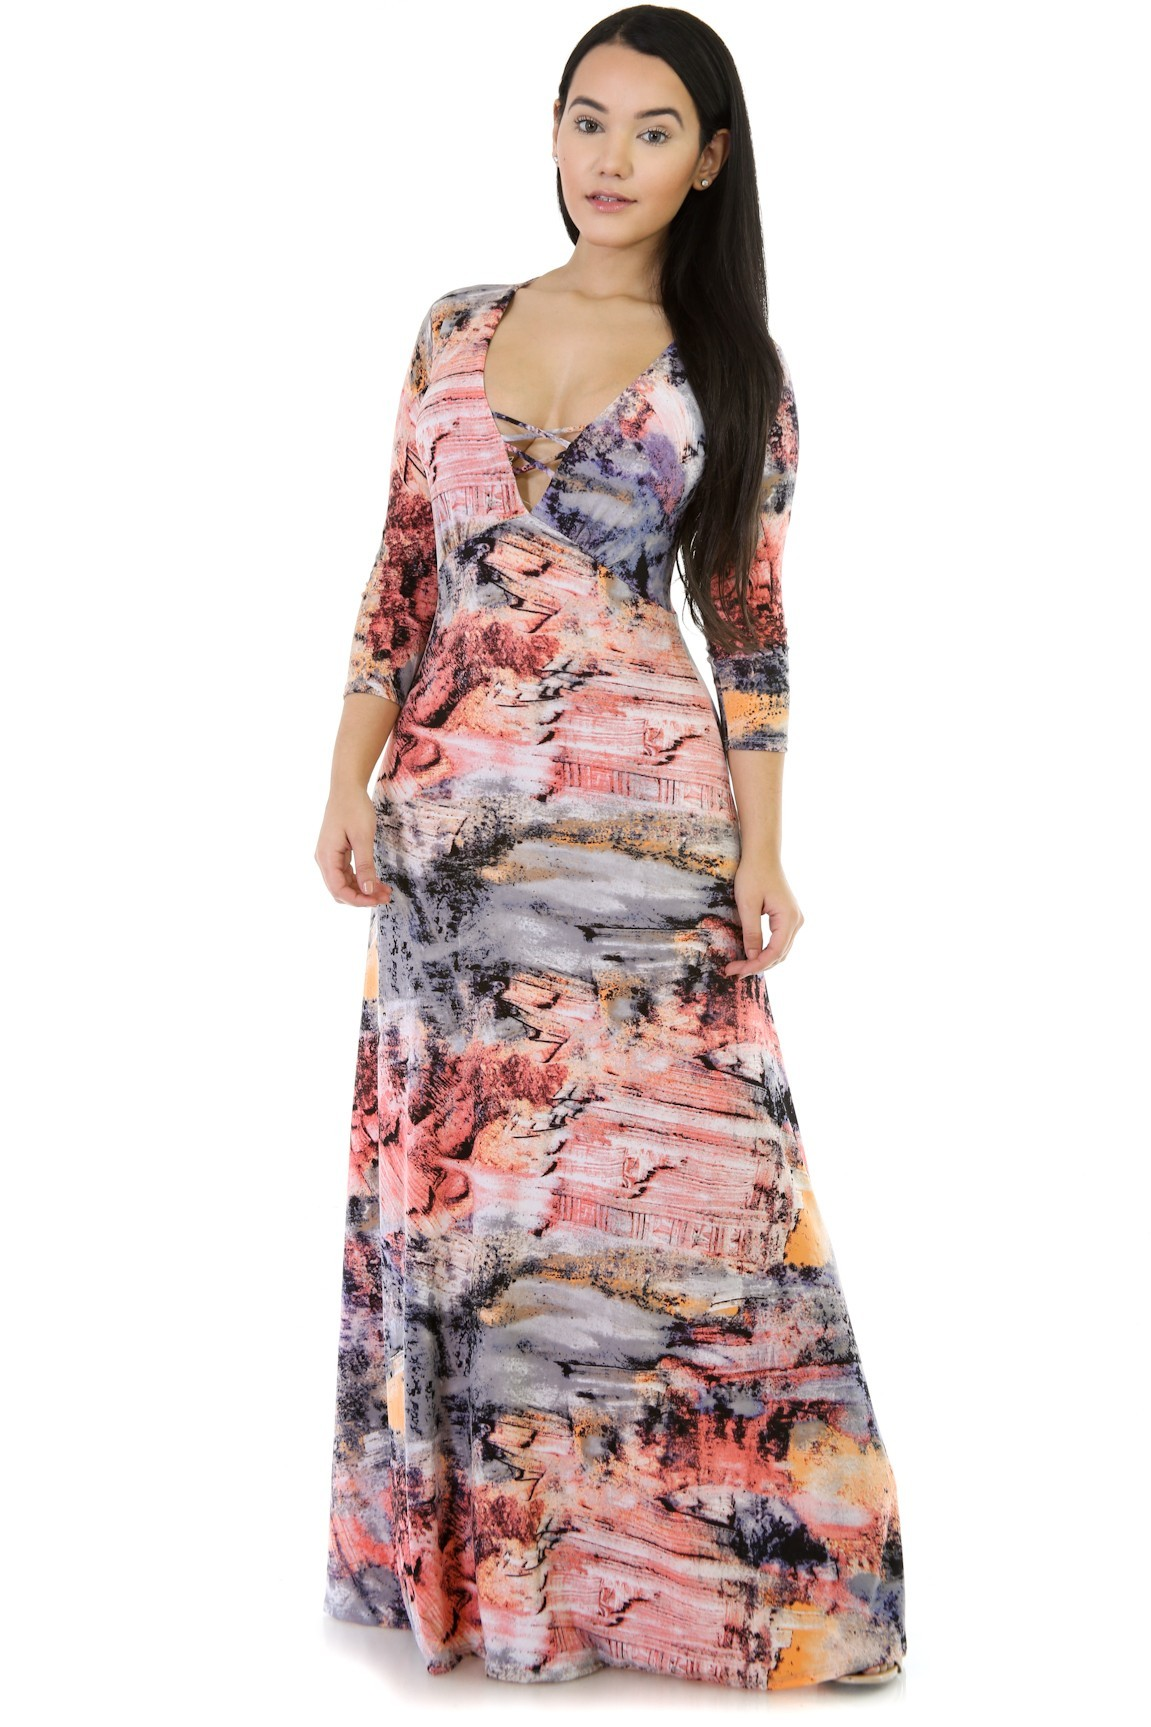 Tripple Color in You Maxi Dress